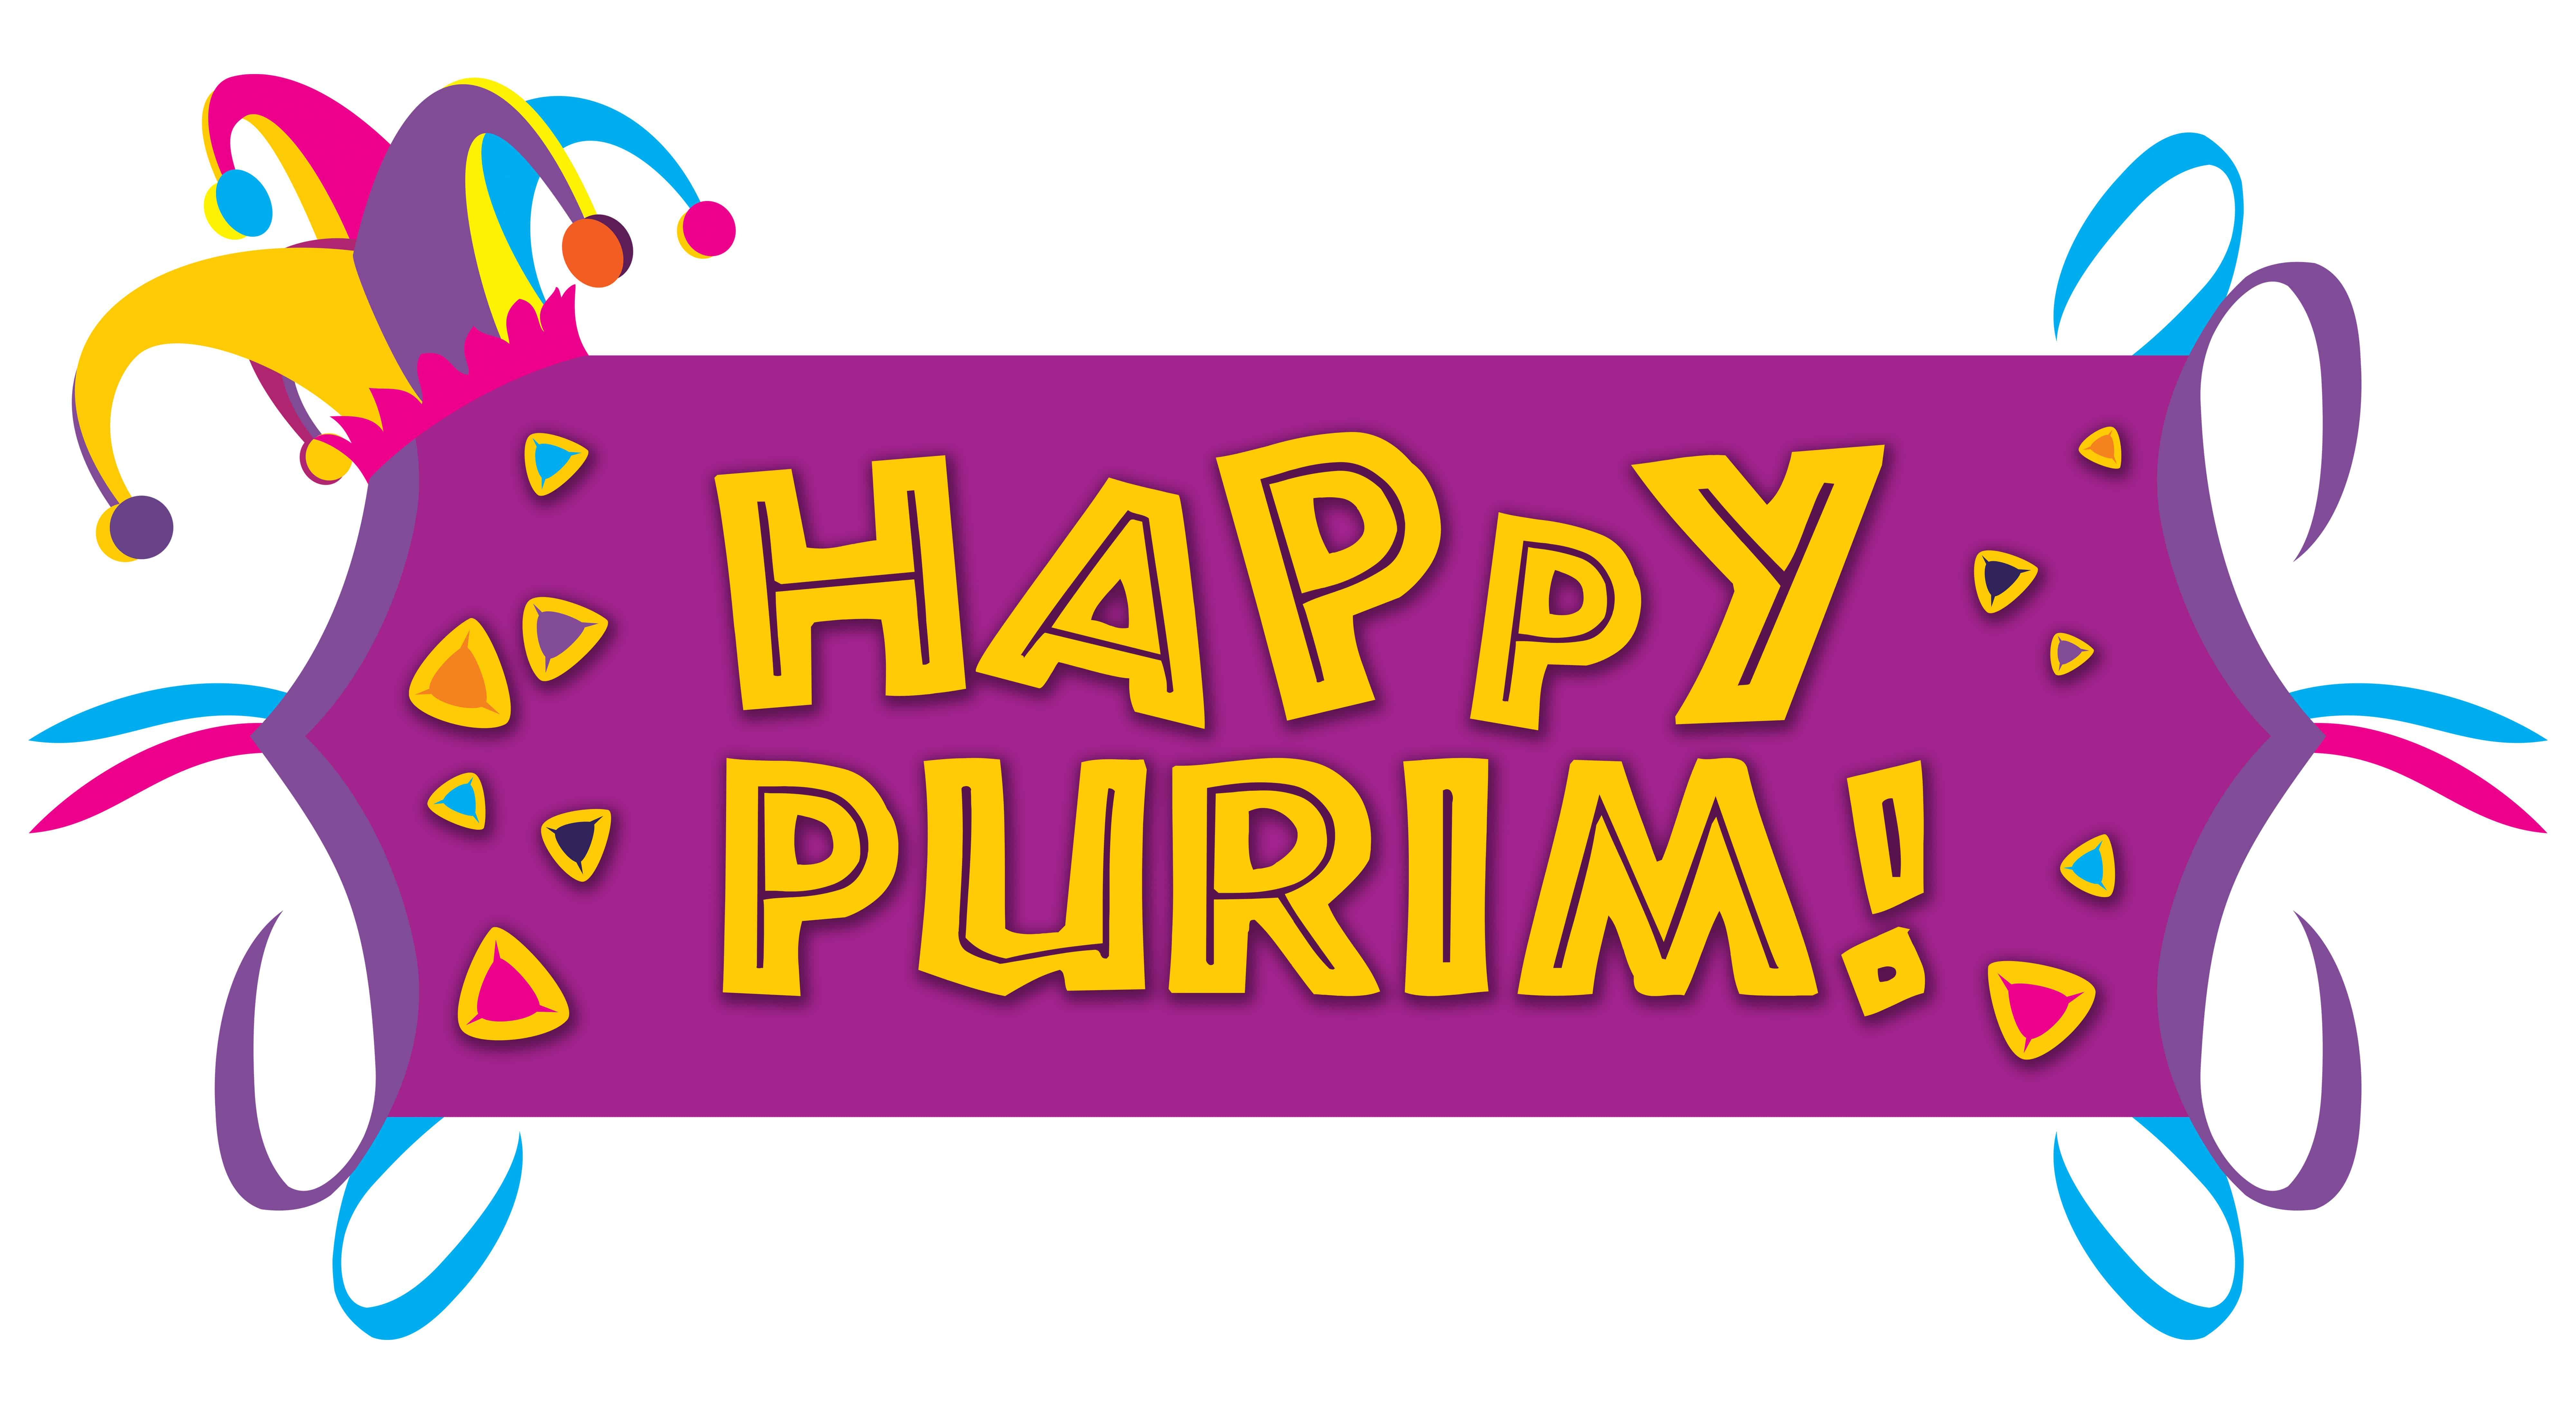 Purim clipart happy purim. Five meaningful traditions how